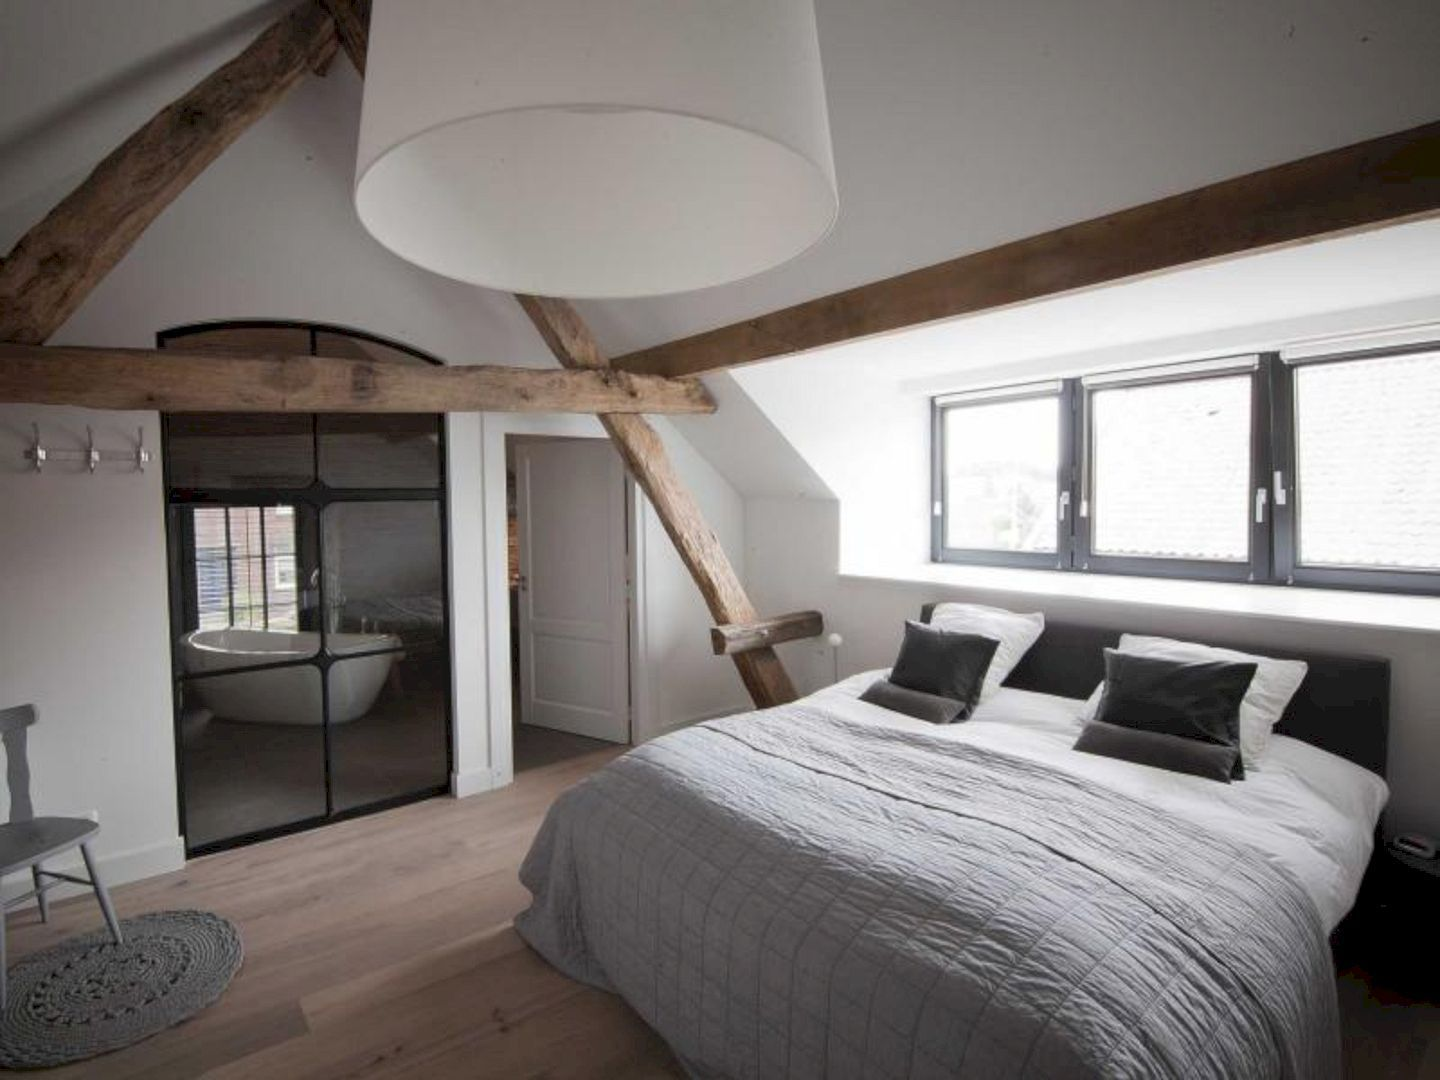 Loft Sixty Four Transformation Of A Former Office And Workshop Into A Modern Loft Attic Bedroom Designs Bedroom Interior Attic Master Bedroom